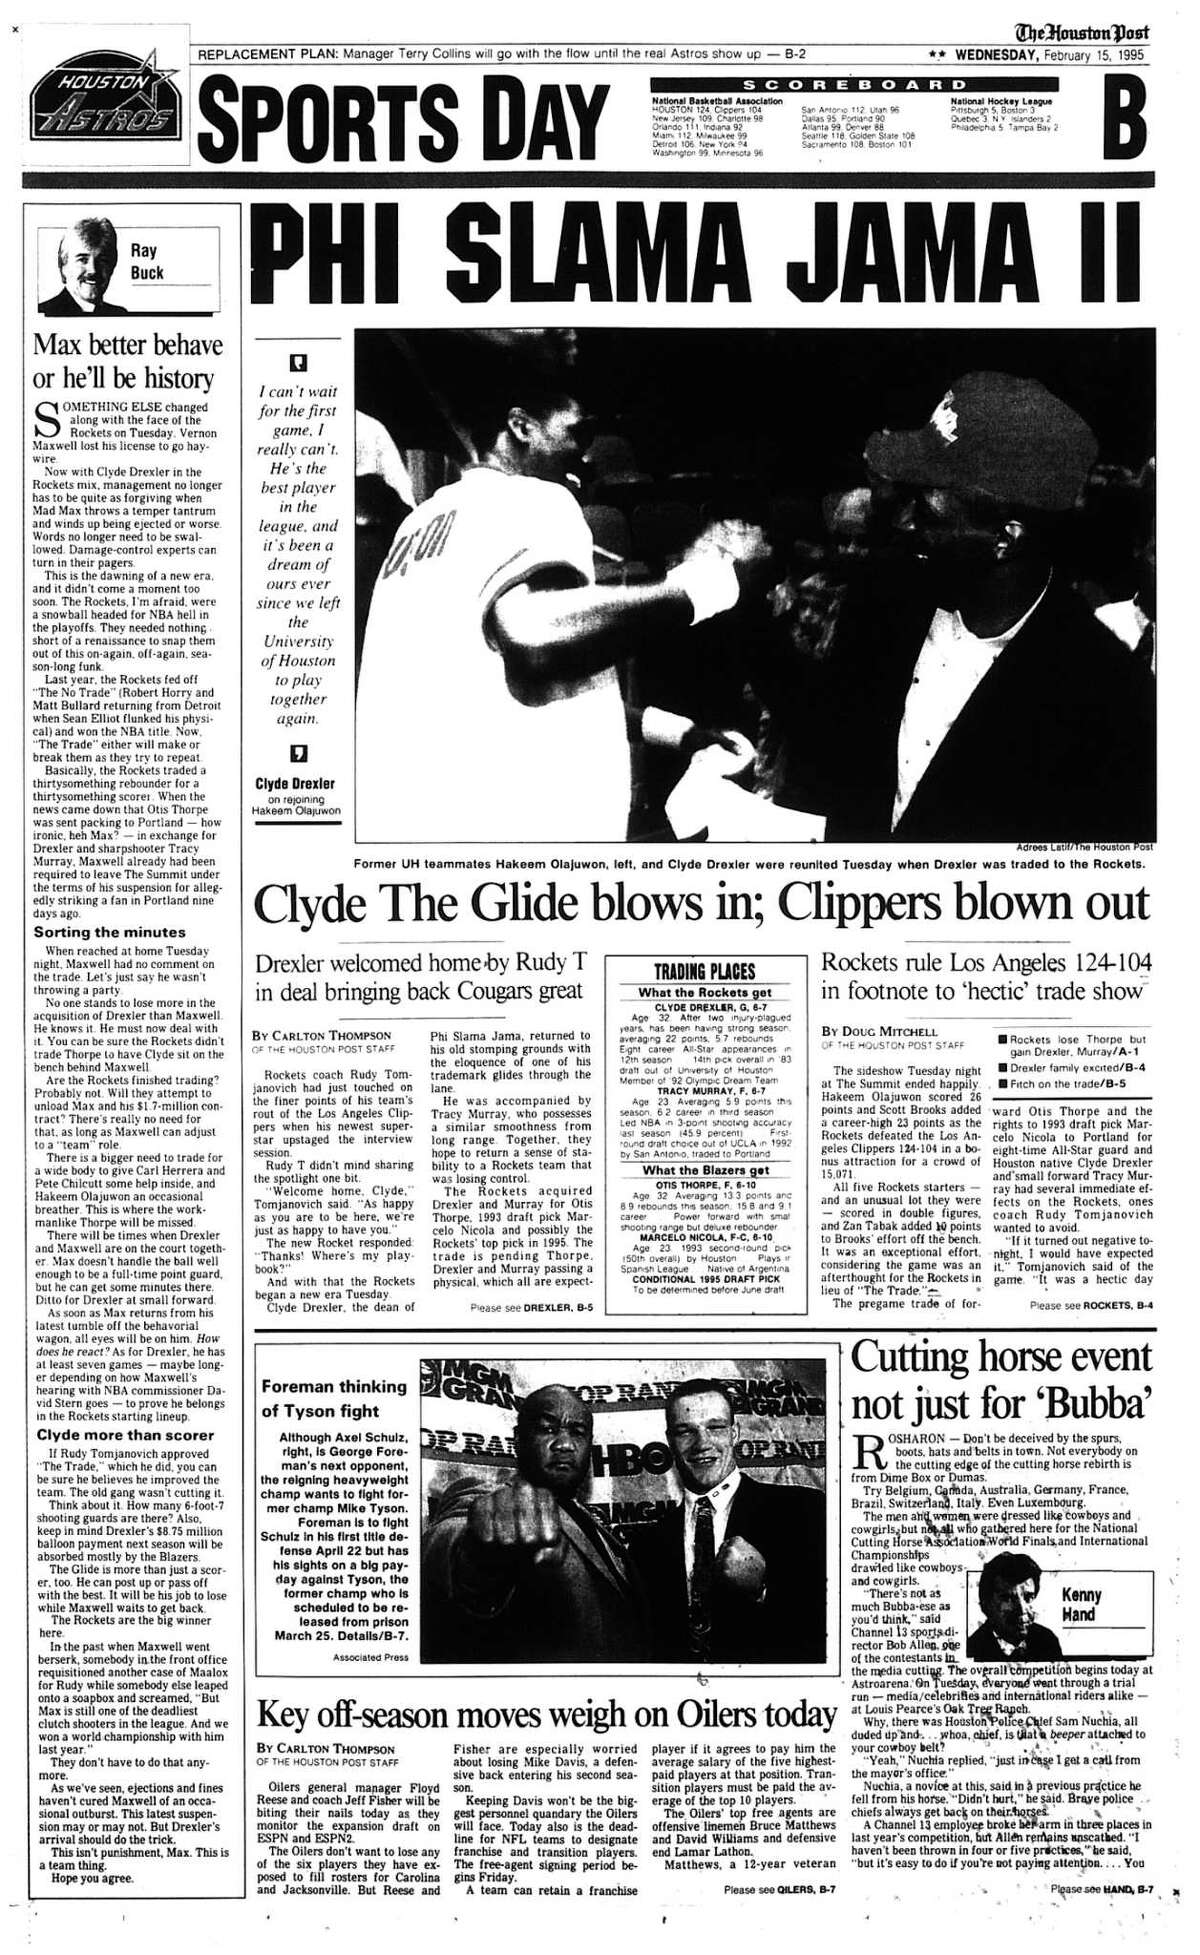 Houston Post inside page Â?- February 15, 1995 - section B, page 1. PHI SLAMA JAMA II Clyde The Glide blows in; Clippers blown out